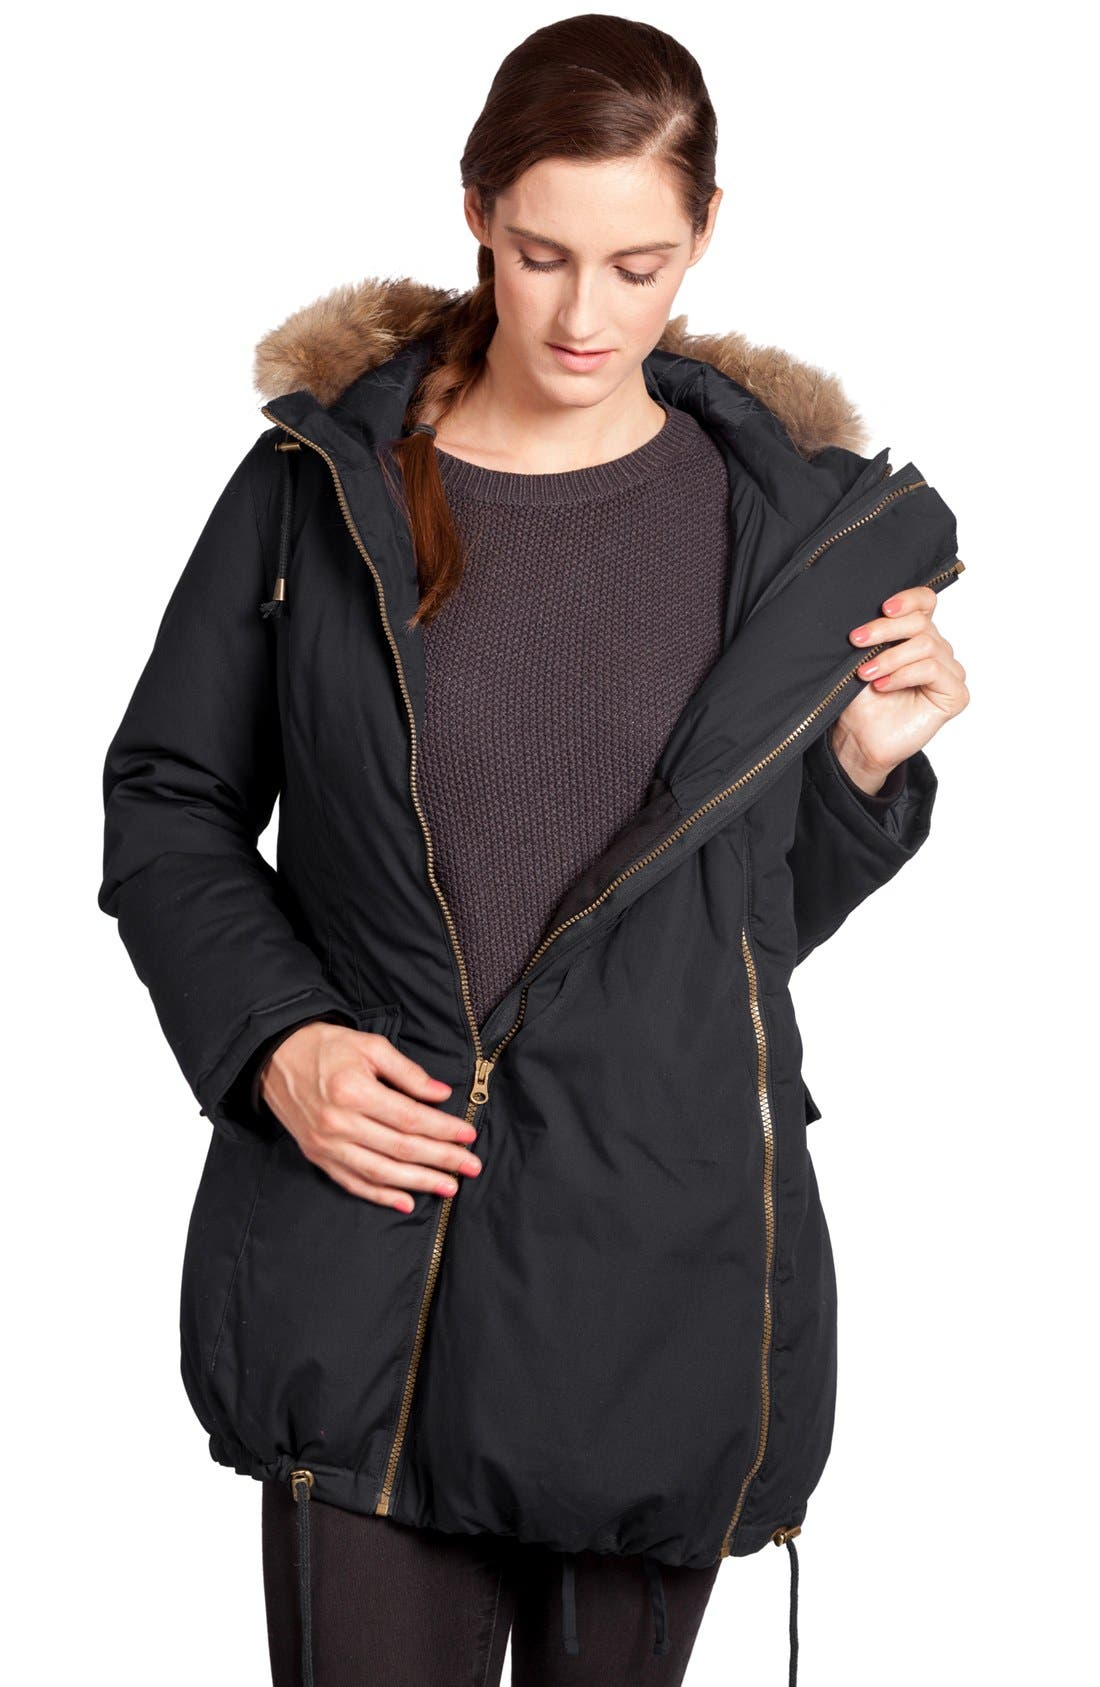 Convertible Down 3-in-1 Maternity Jacket,                             Alternate thumbnail 12, color,                             BLACK